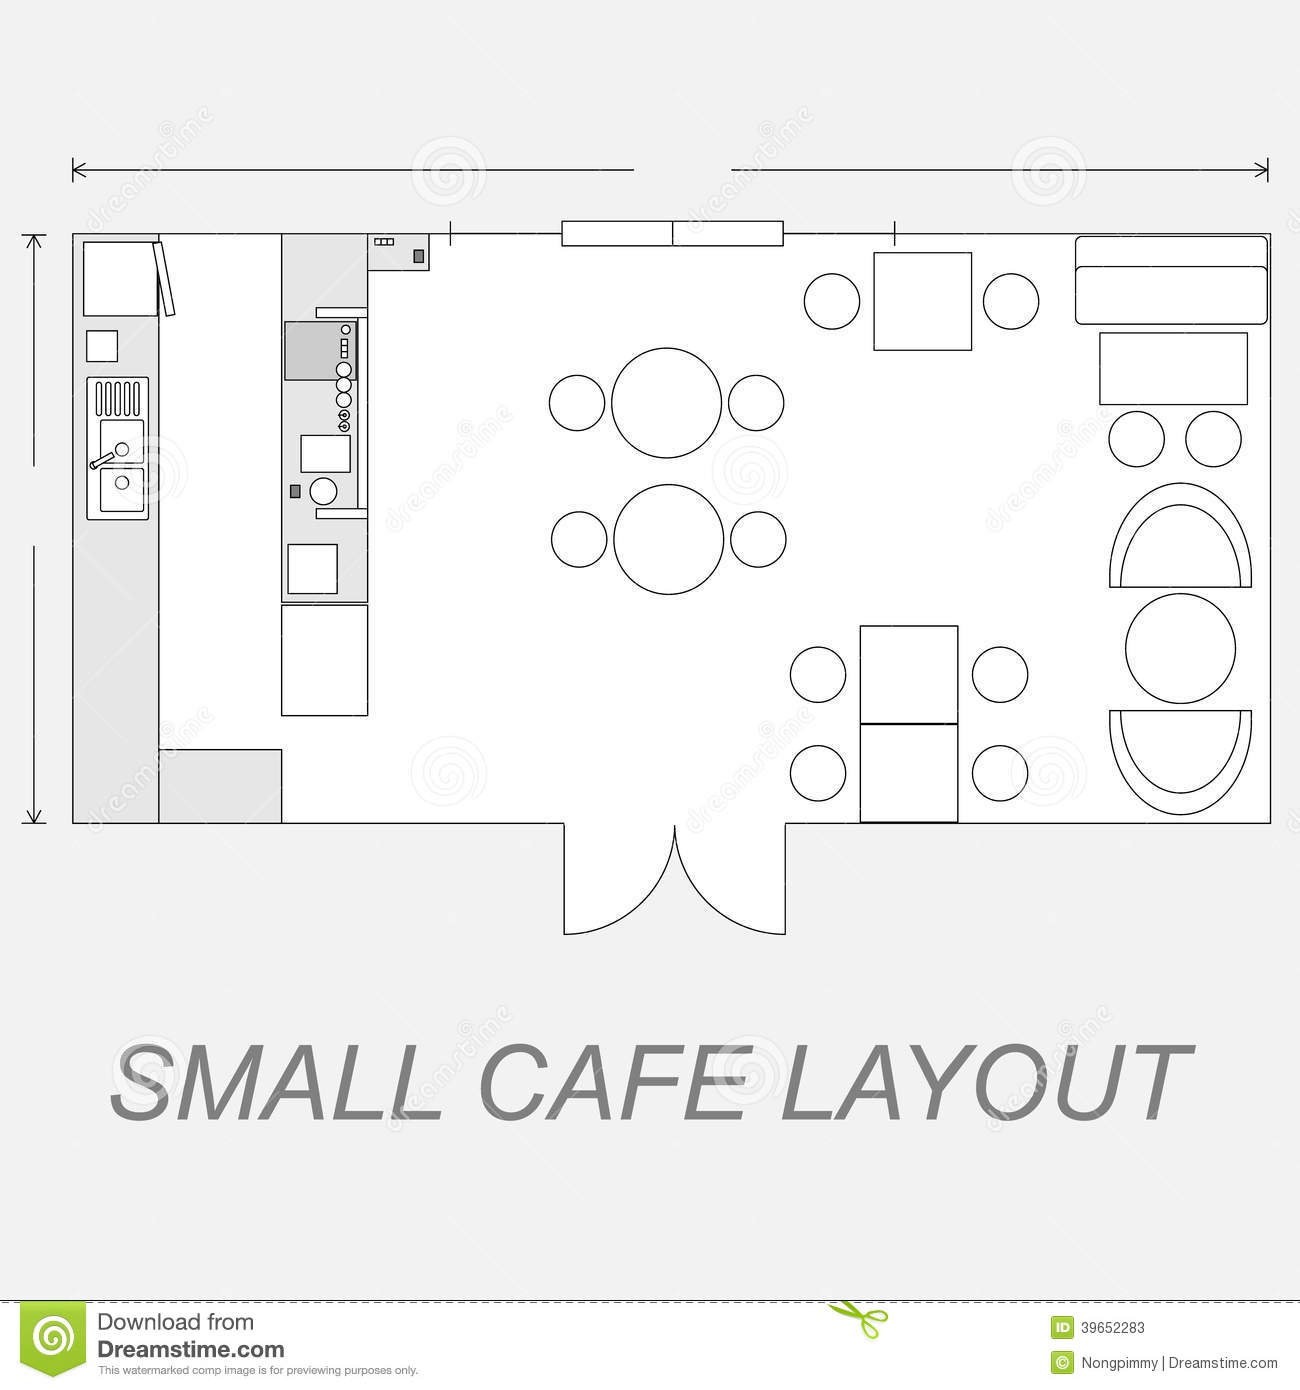 Small Cafe Layout Stock Vector Illustration Of Shop 39652283